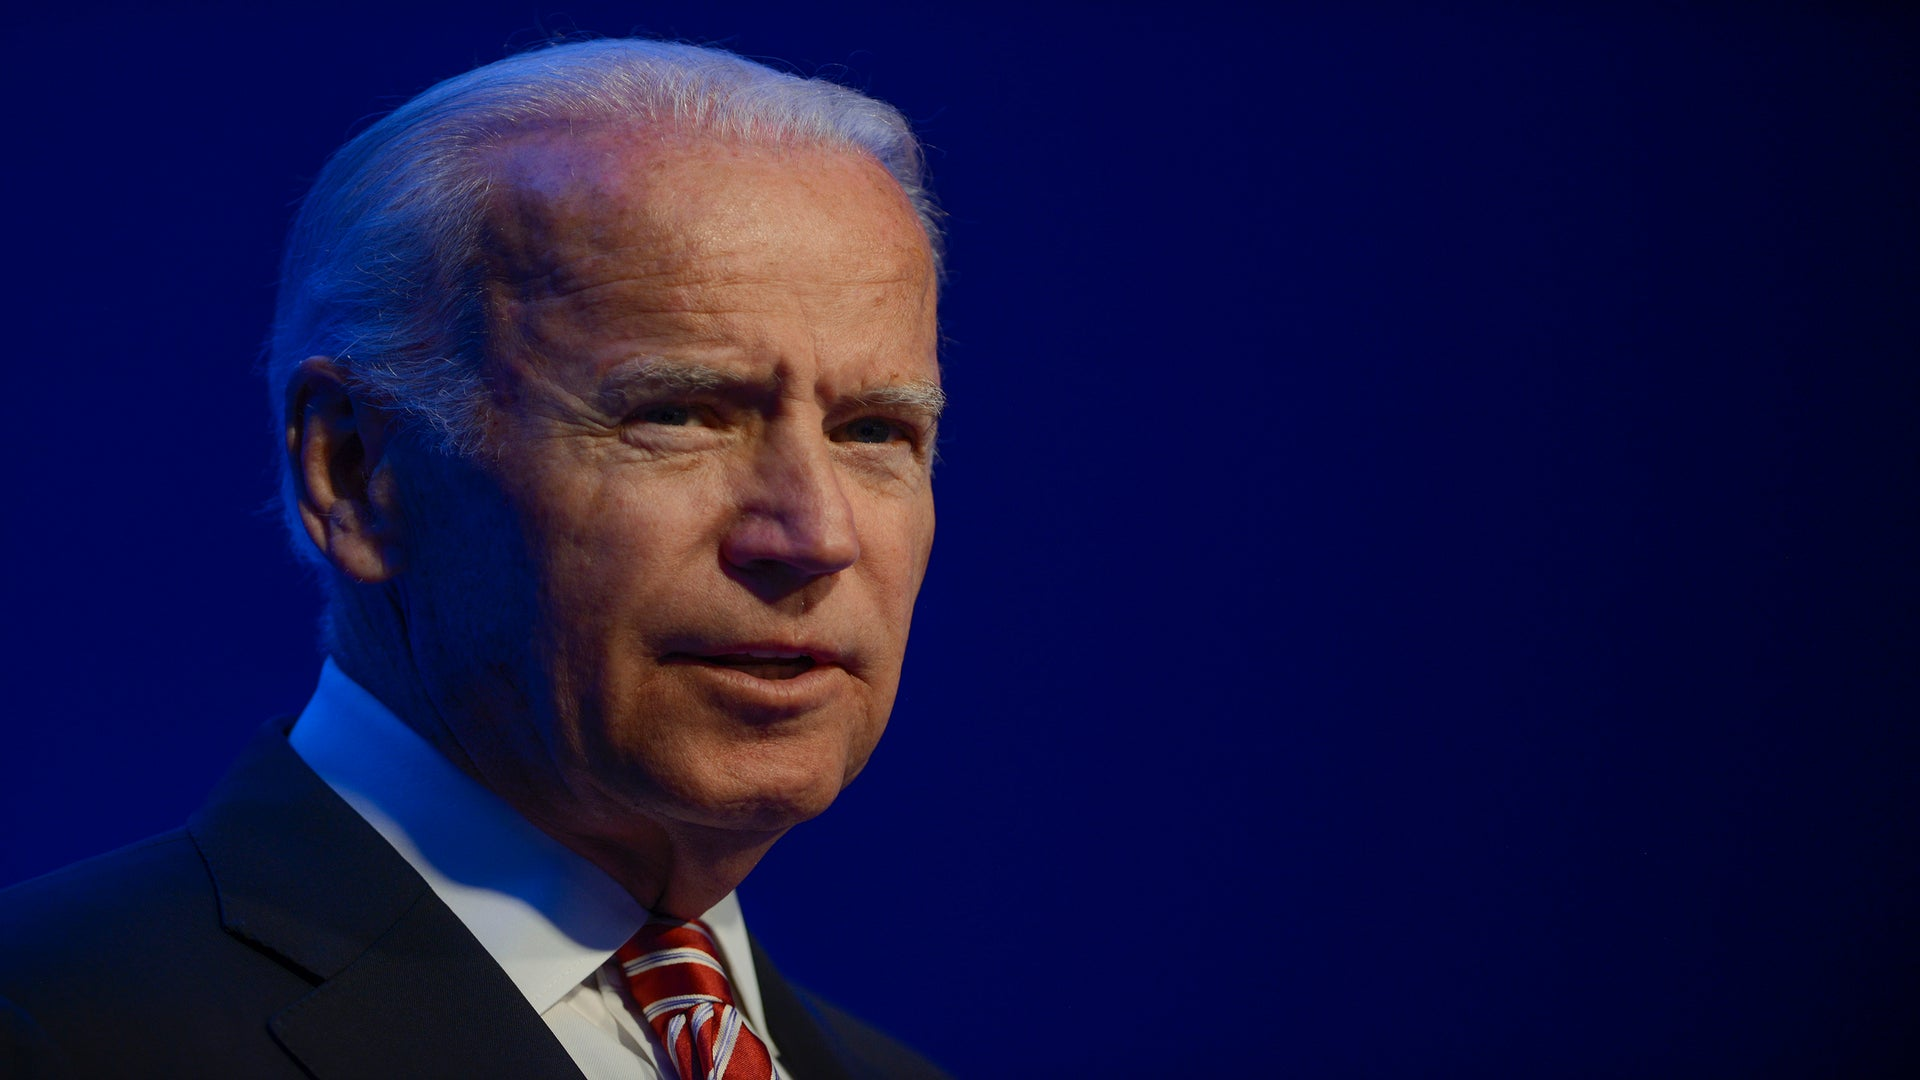 Opinion: Joe Biden Is The White Moderate Dr. King Warned Us About